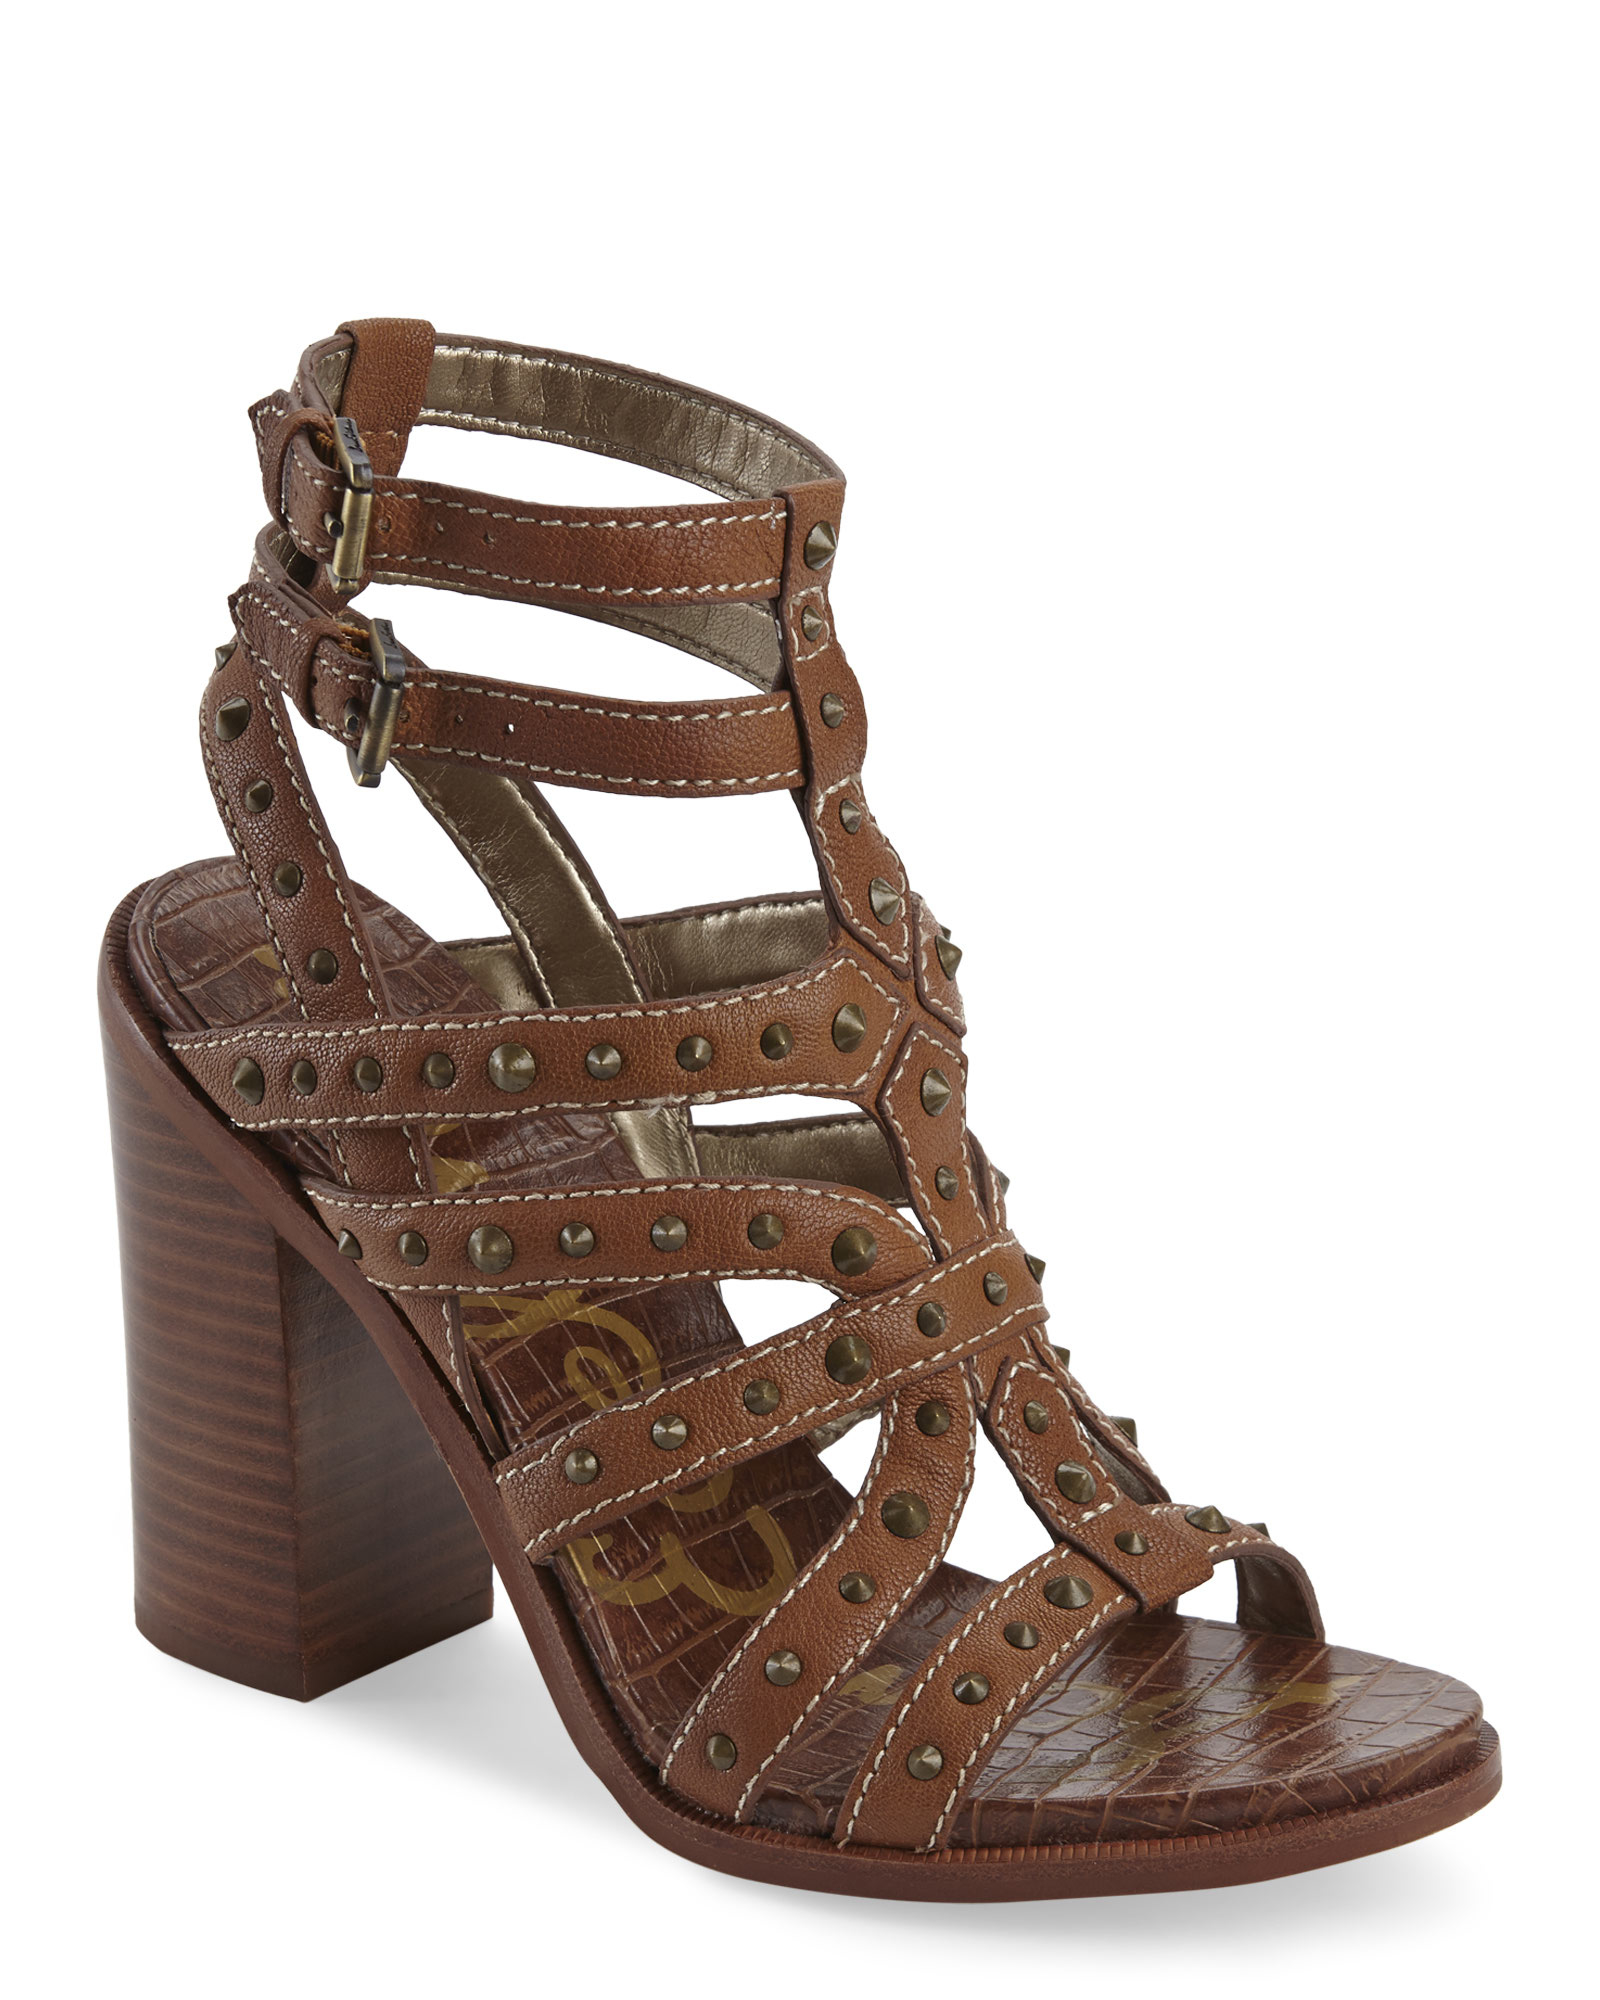 6c552a48fd99b ... Lyst - Sam Edelman Saddle Keith Studded Sandals in Brown discount sale  5f781 95de3 ...